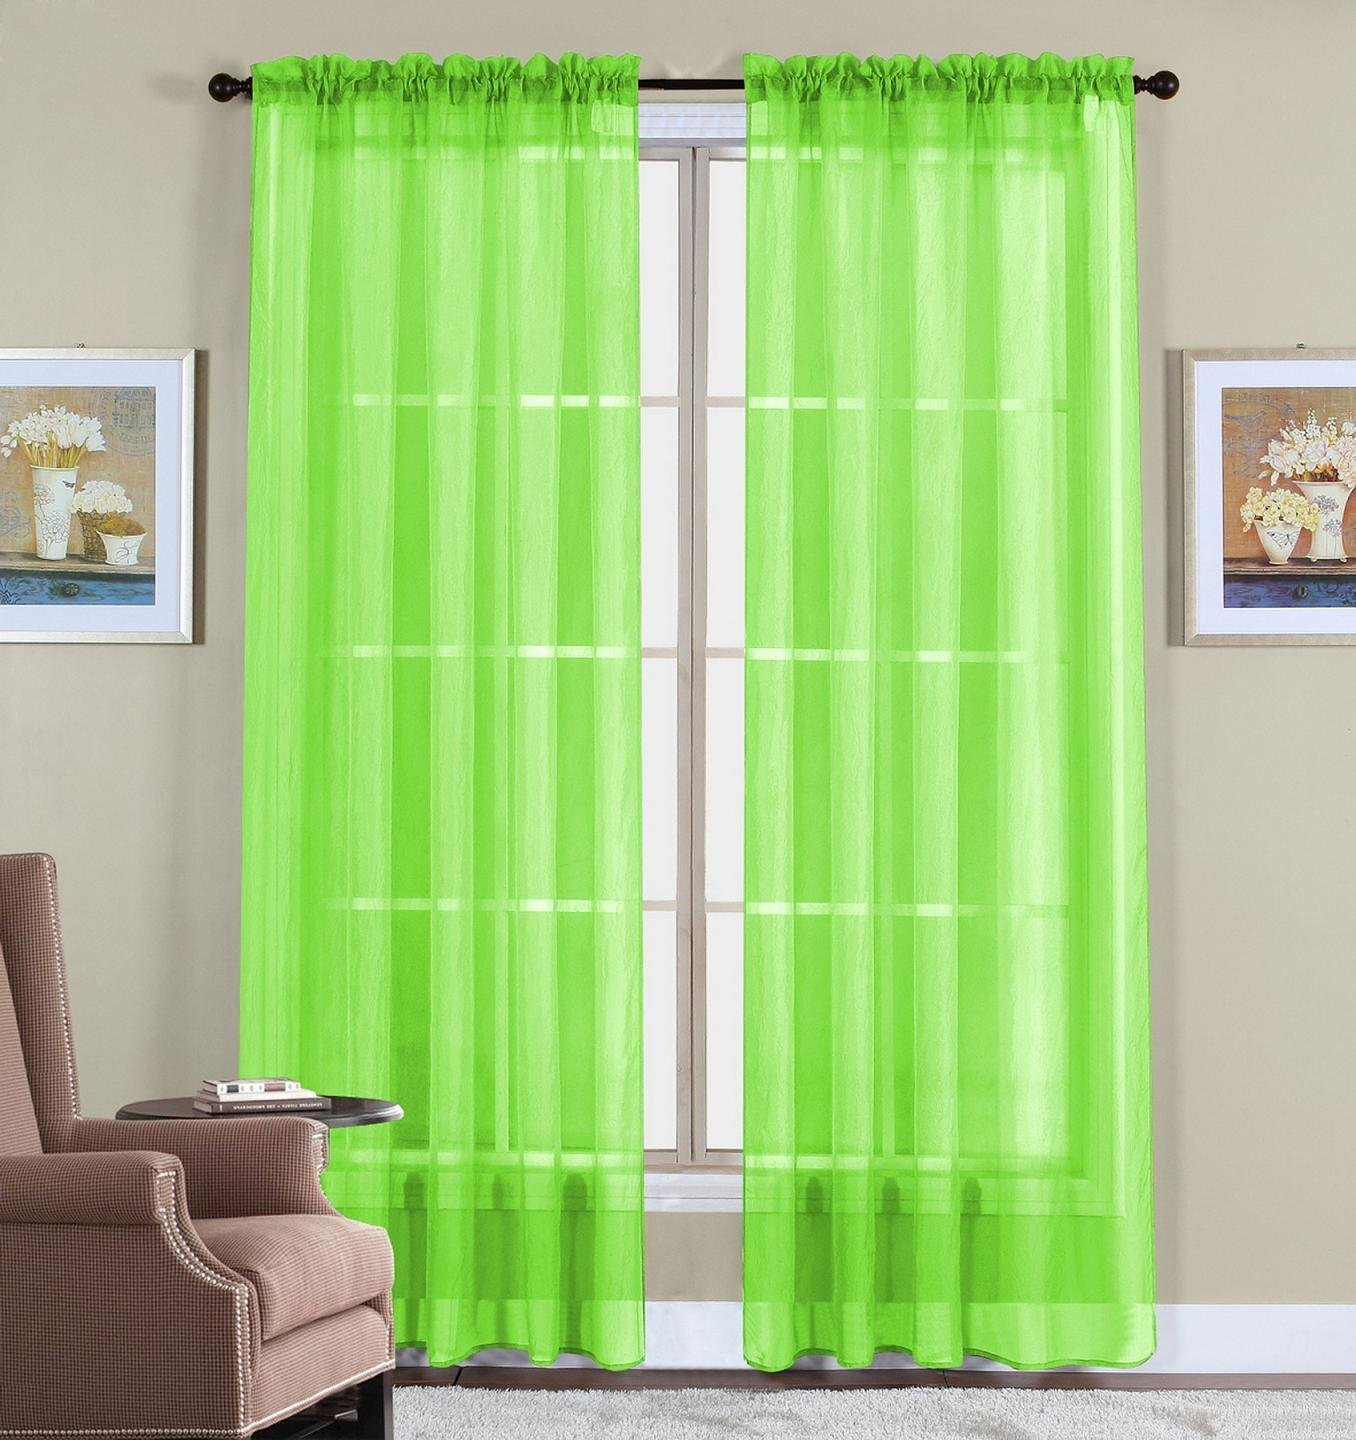 Green Window Curtain Panels On Sale Ease Bedding With Style